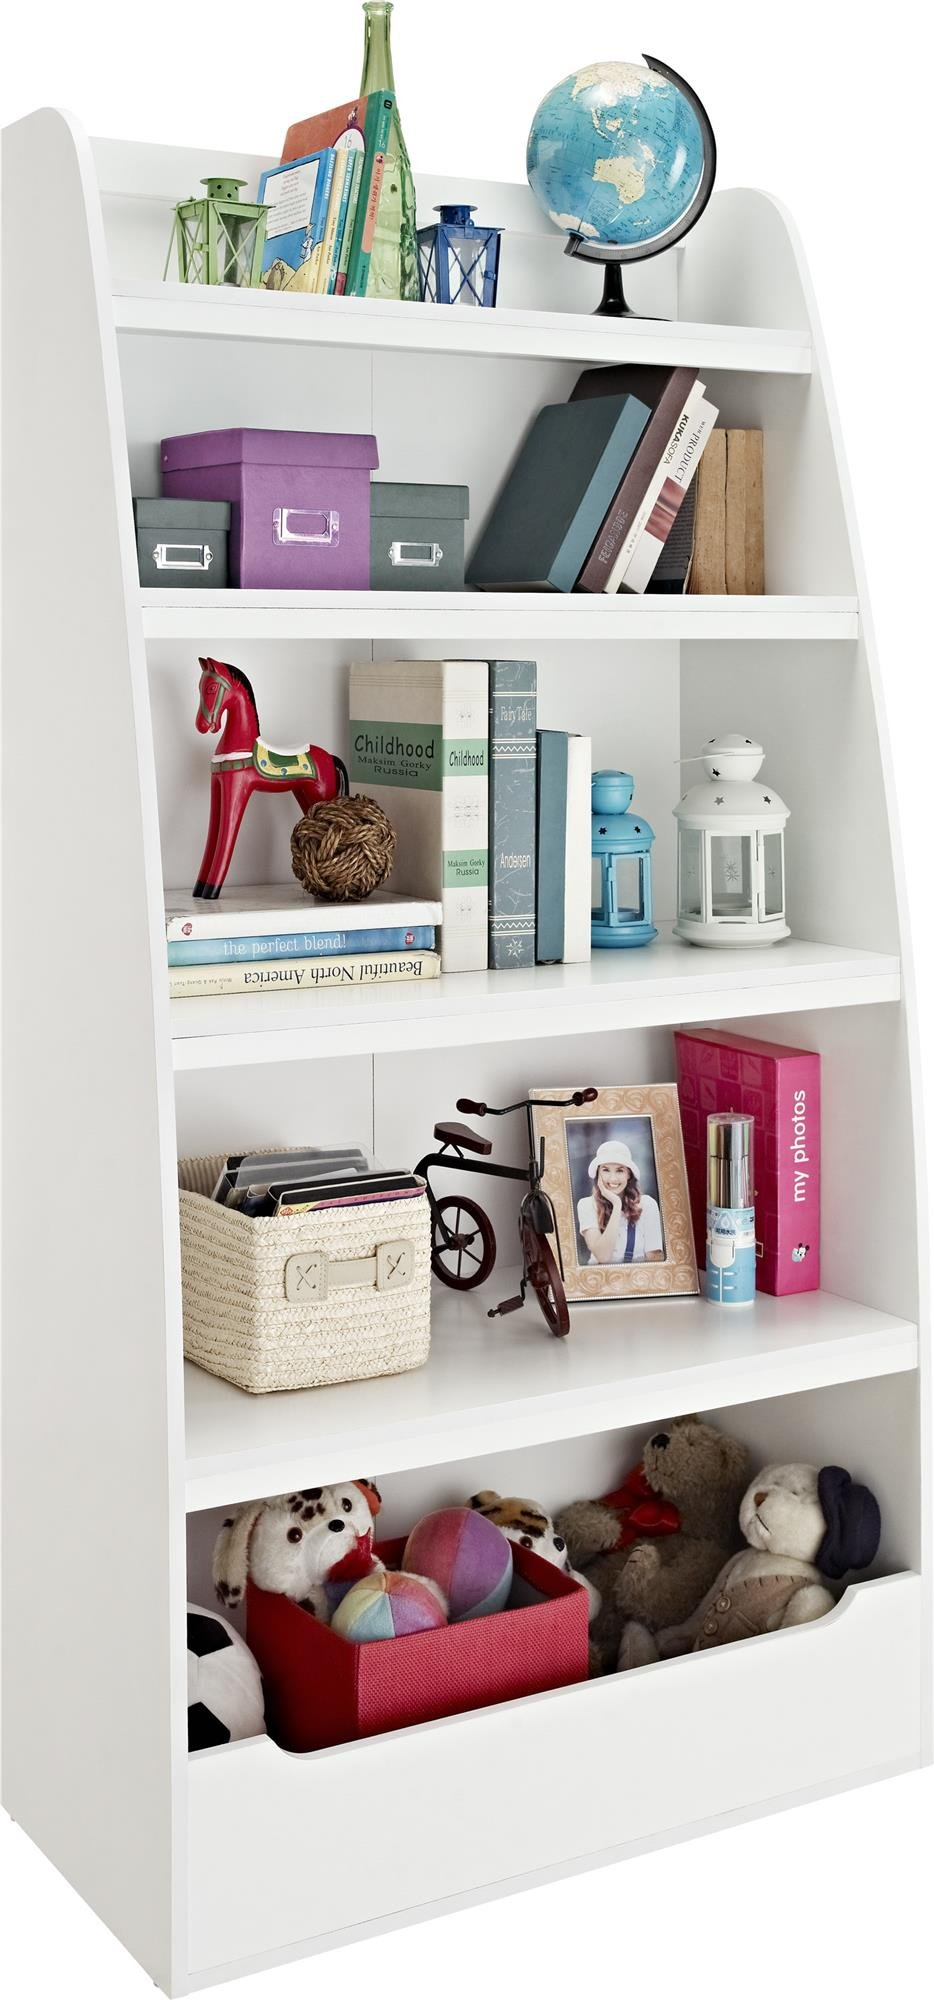 Ameriwood Home Hazel Kids' 4 Shelf Bookcase, White by Ameriwood Home (Image #2)